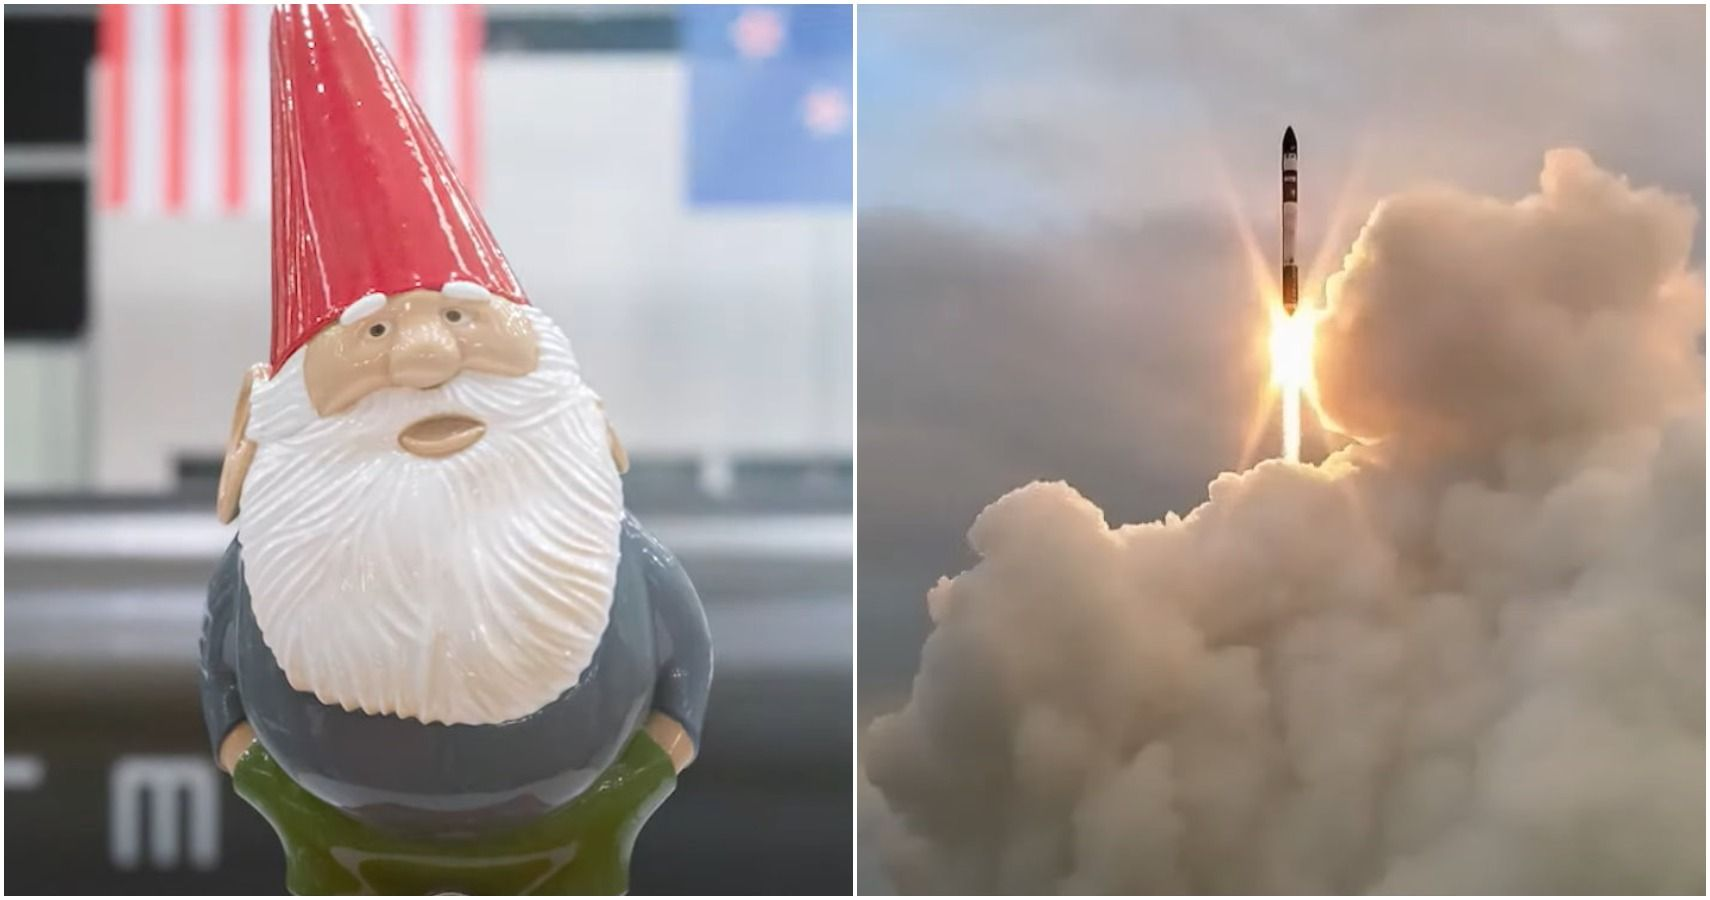 Watch A Half-Life Garden Gnome Get Shot Into Space Today